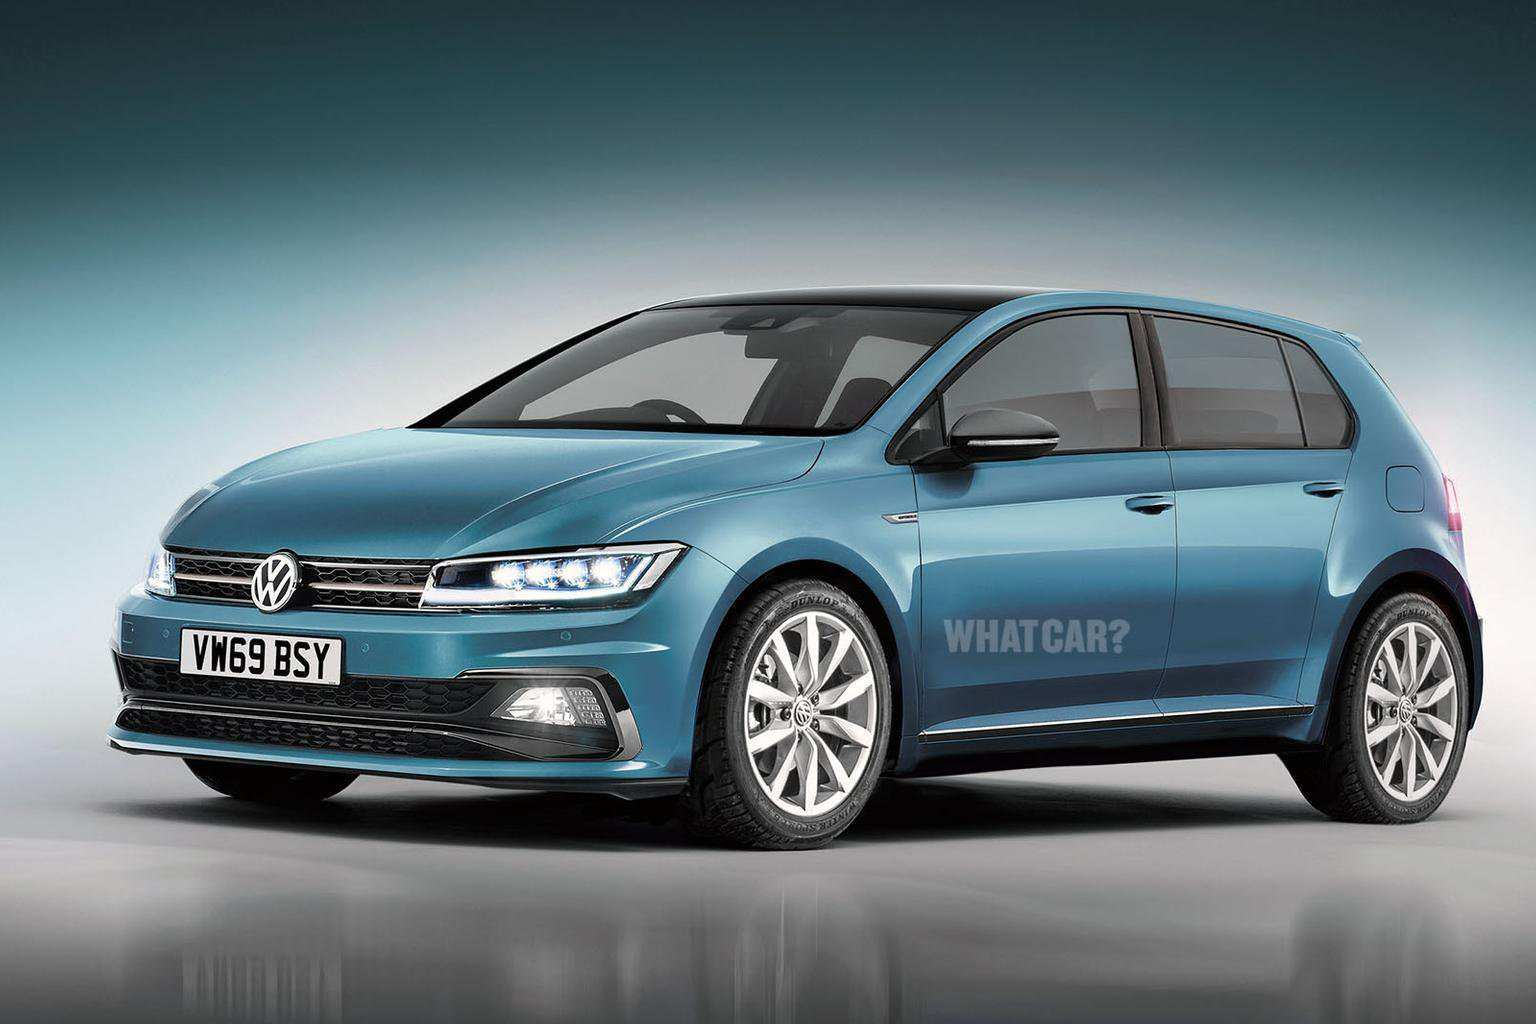 84 Great 2019 Vw Golf Mk8 Overview with 2019 Vw Golf Mk8